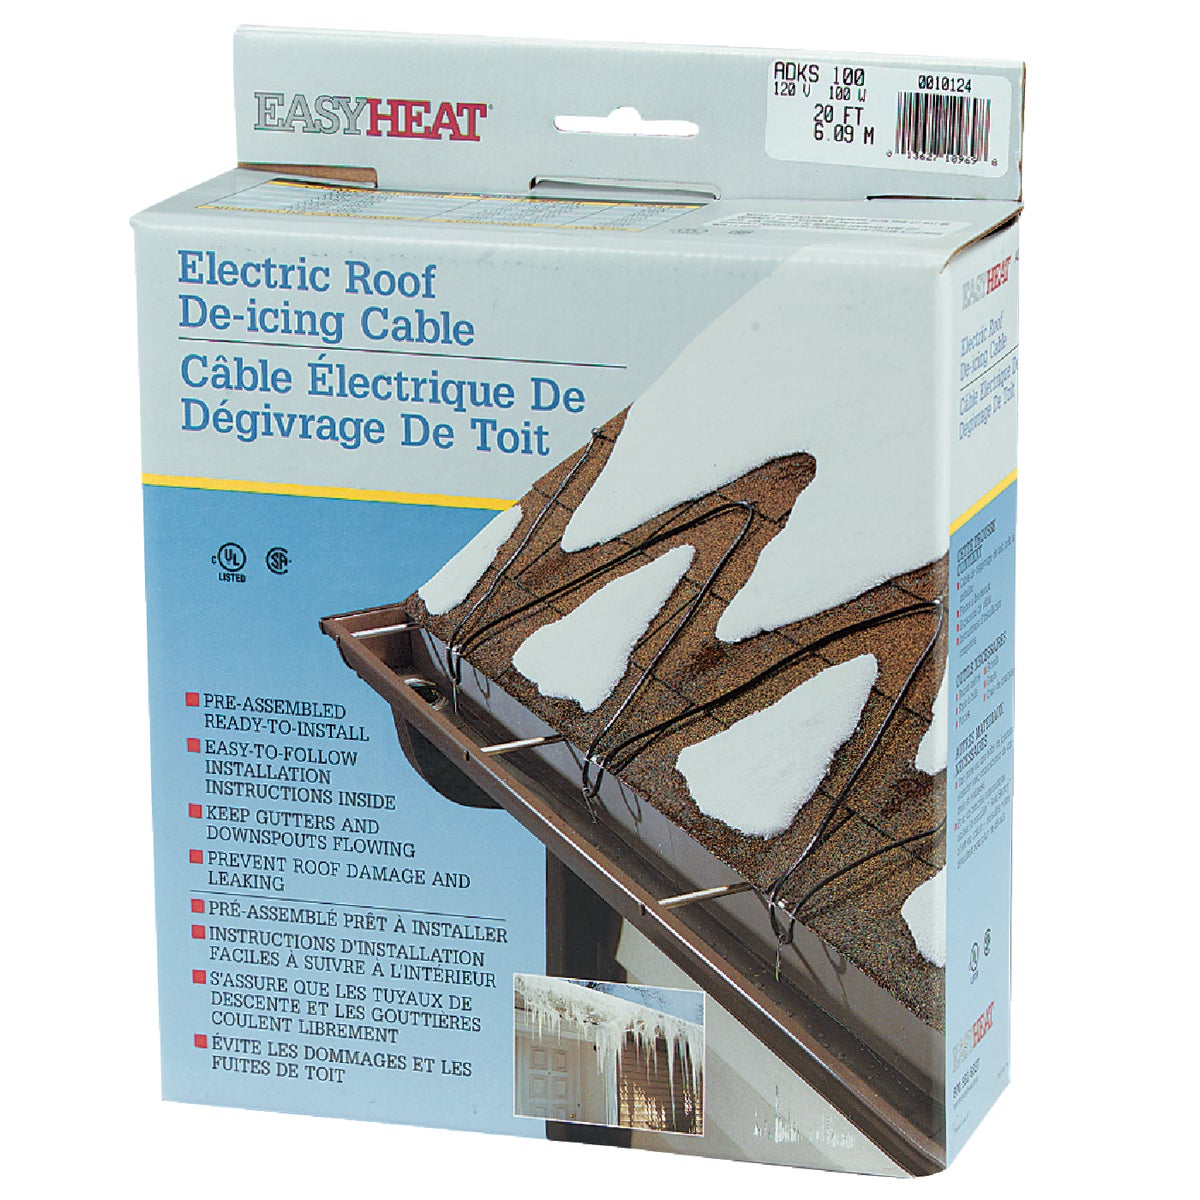 20' ROOF CABLE - ADKS100 by Easy Heat Inc